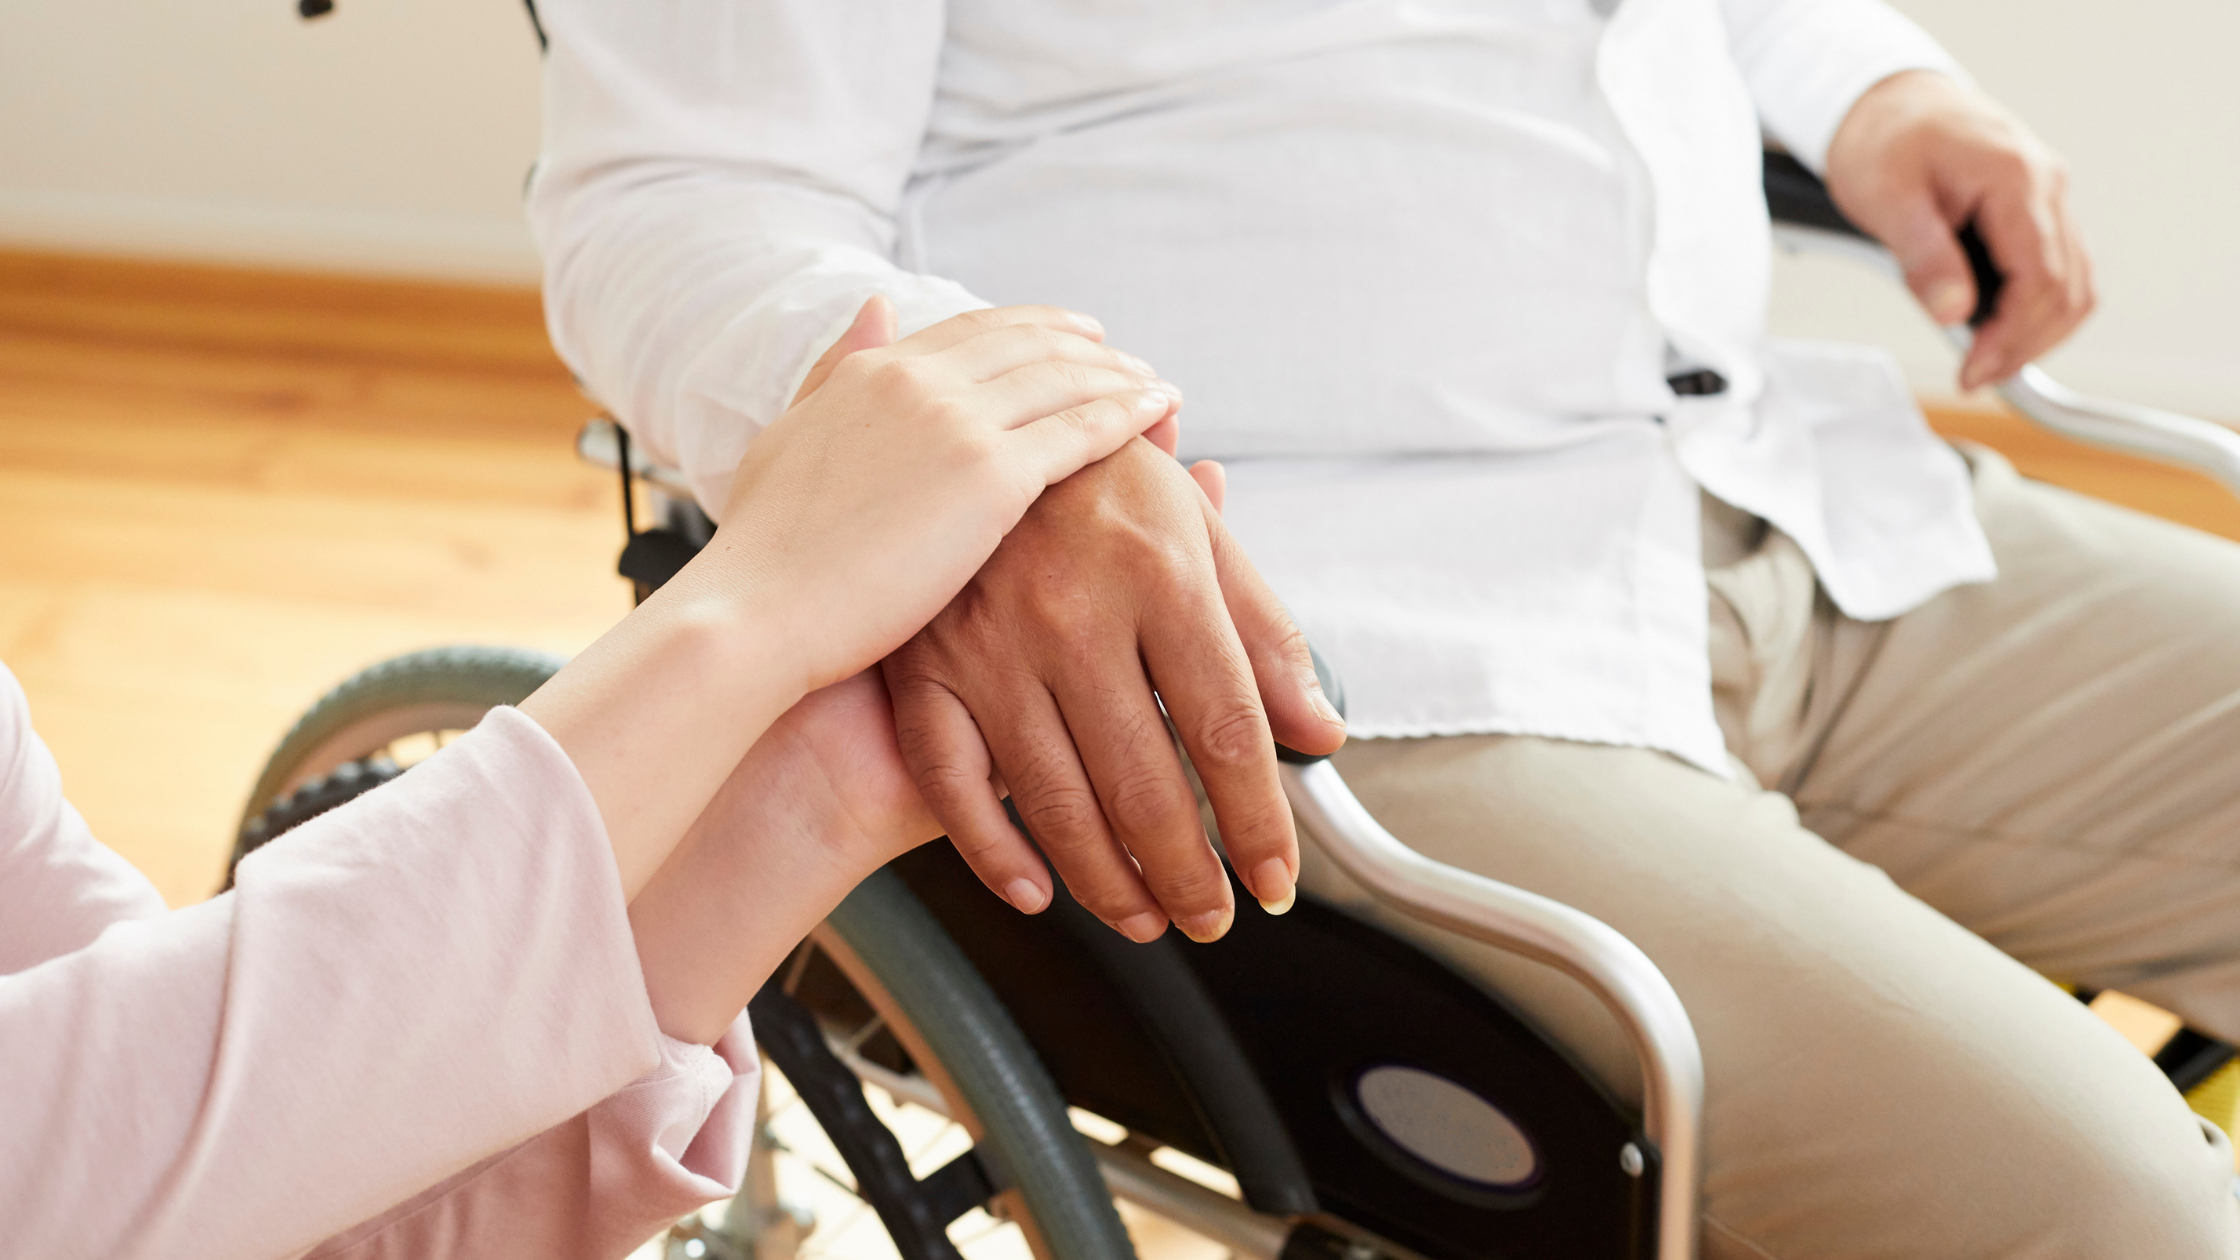 Social Worker consoling a Stroke Recovery Patient by holding their hand